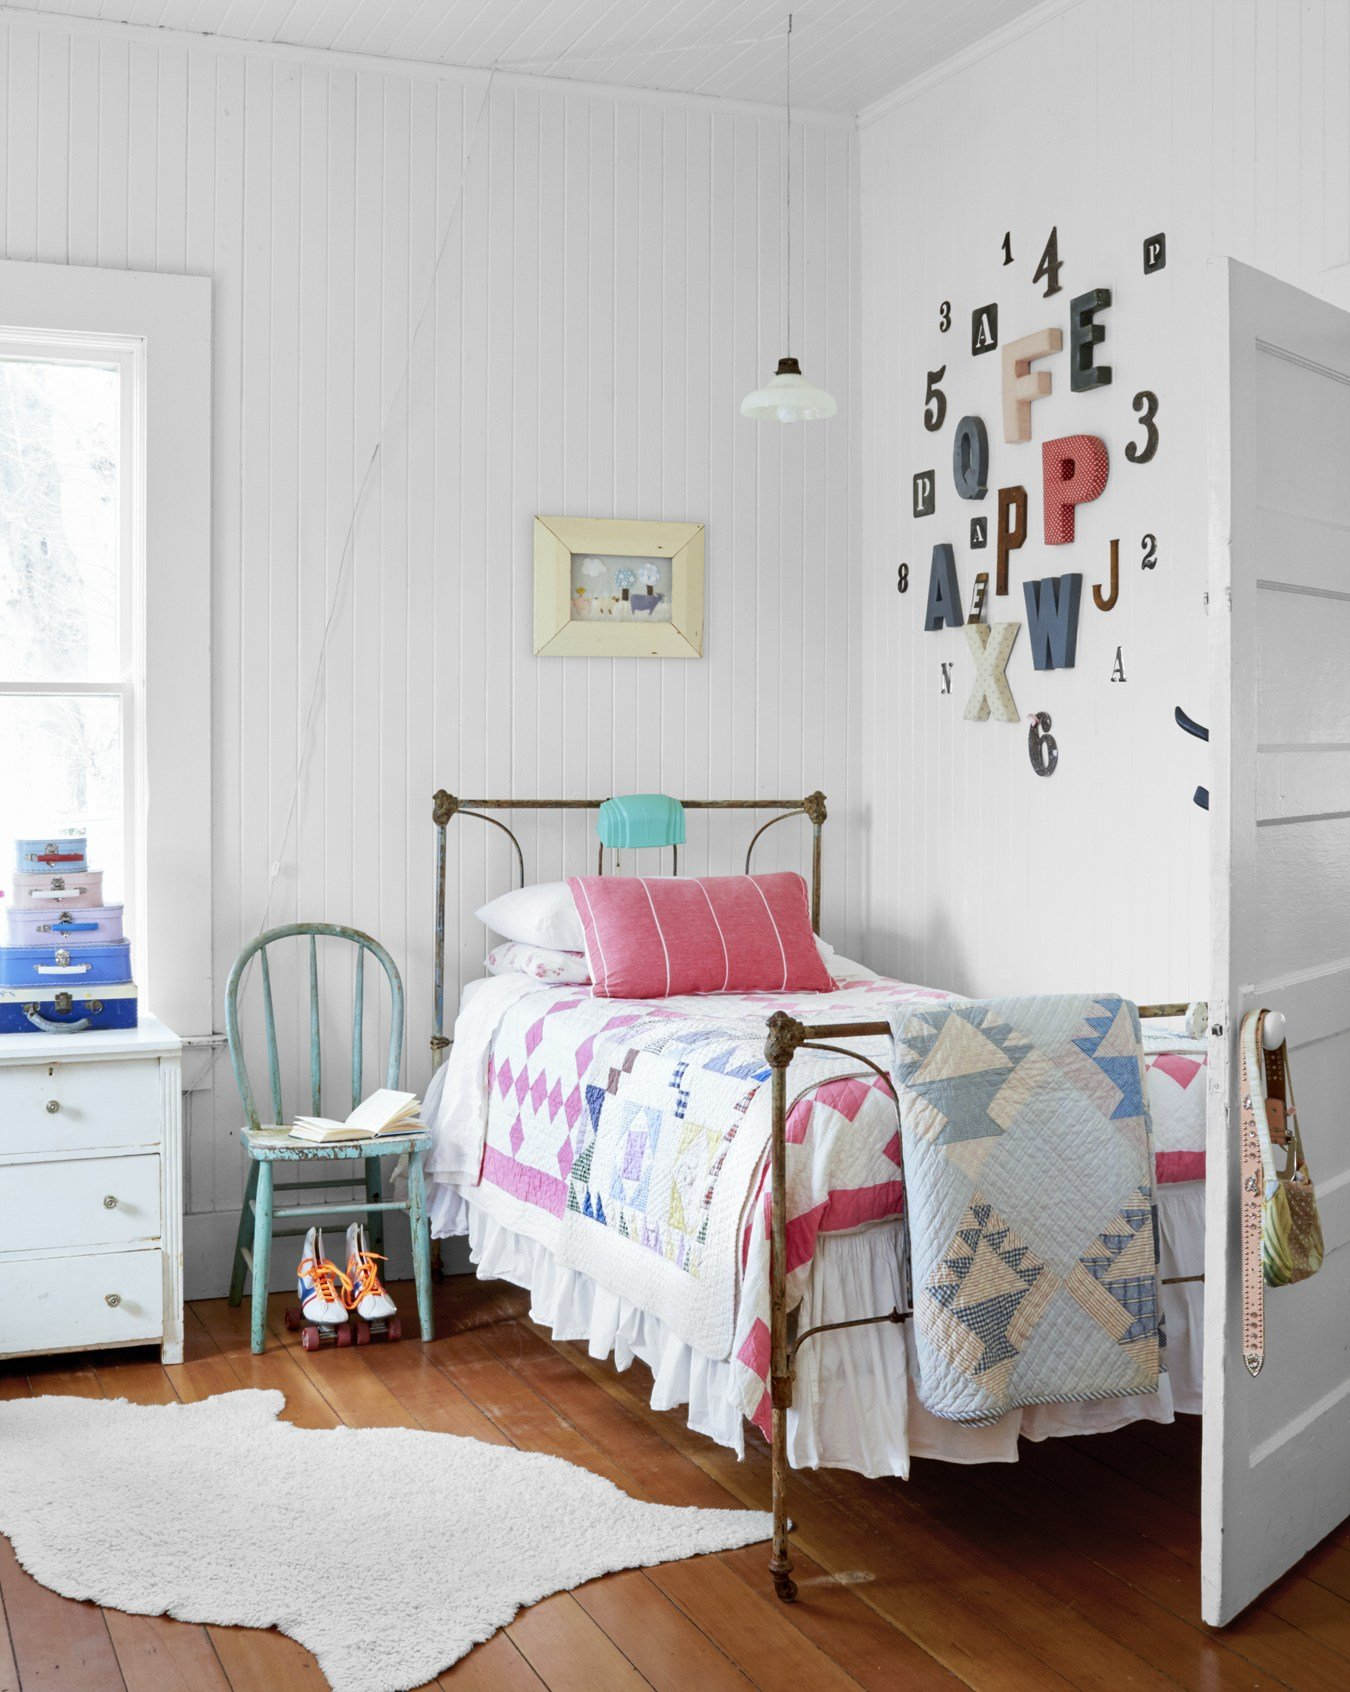 Best Kids Room Ideas – Design And Decorating Ideas For Kids Rooms With Pictures